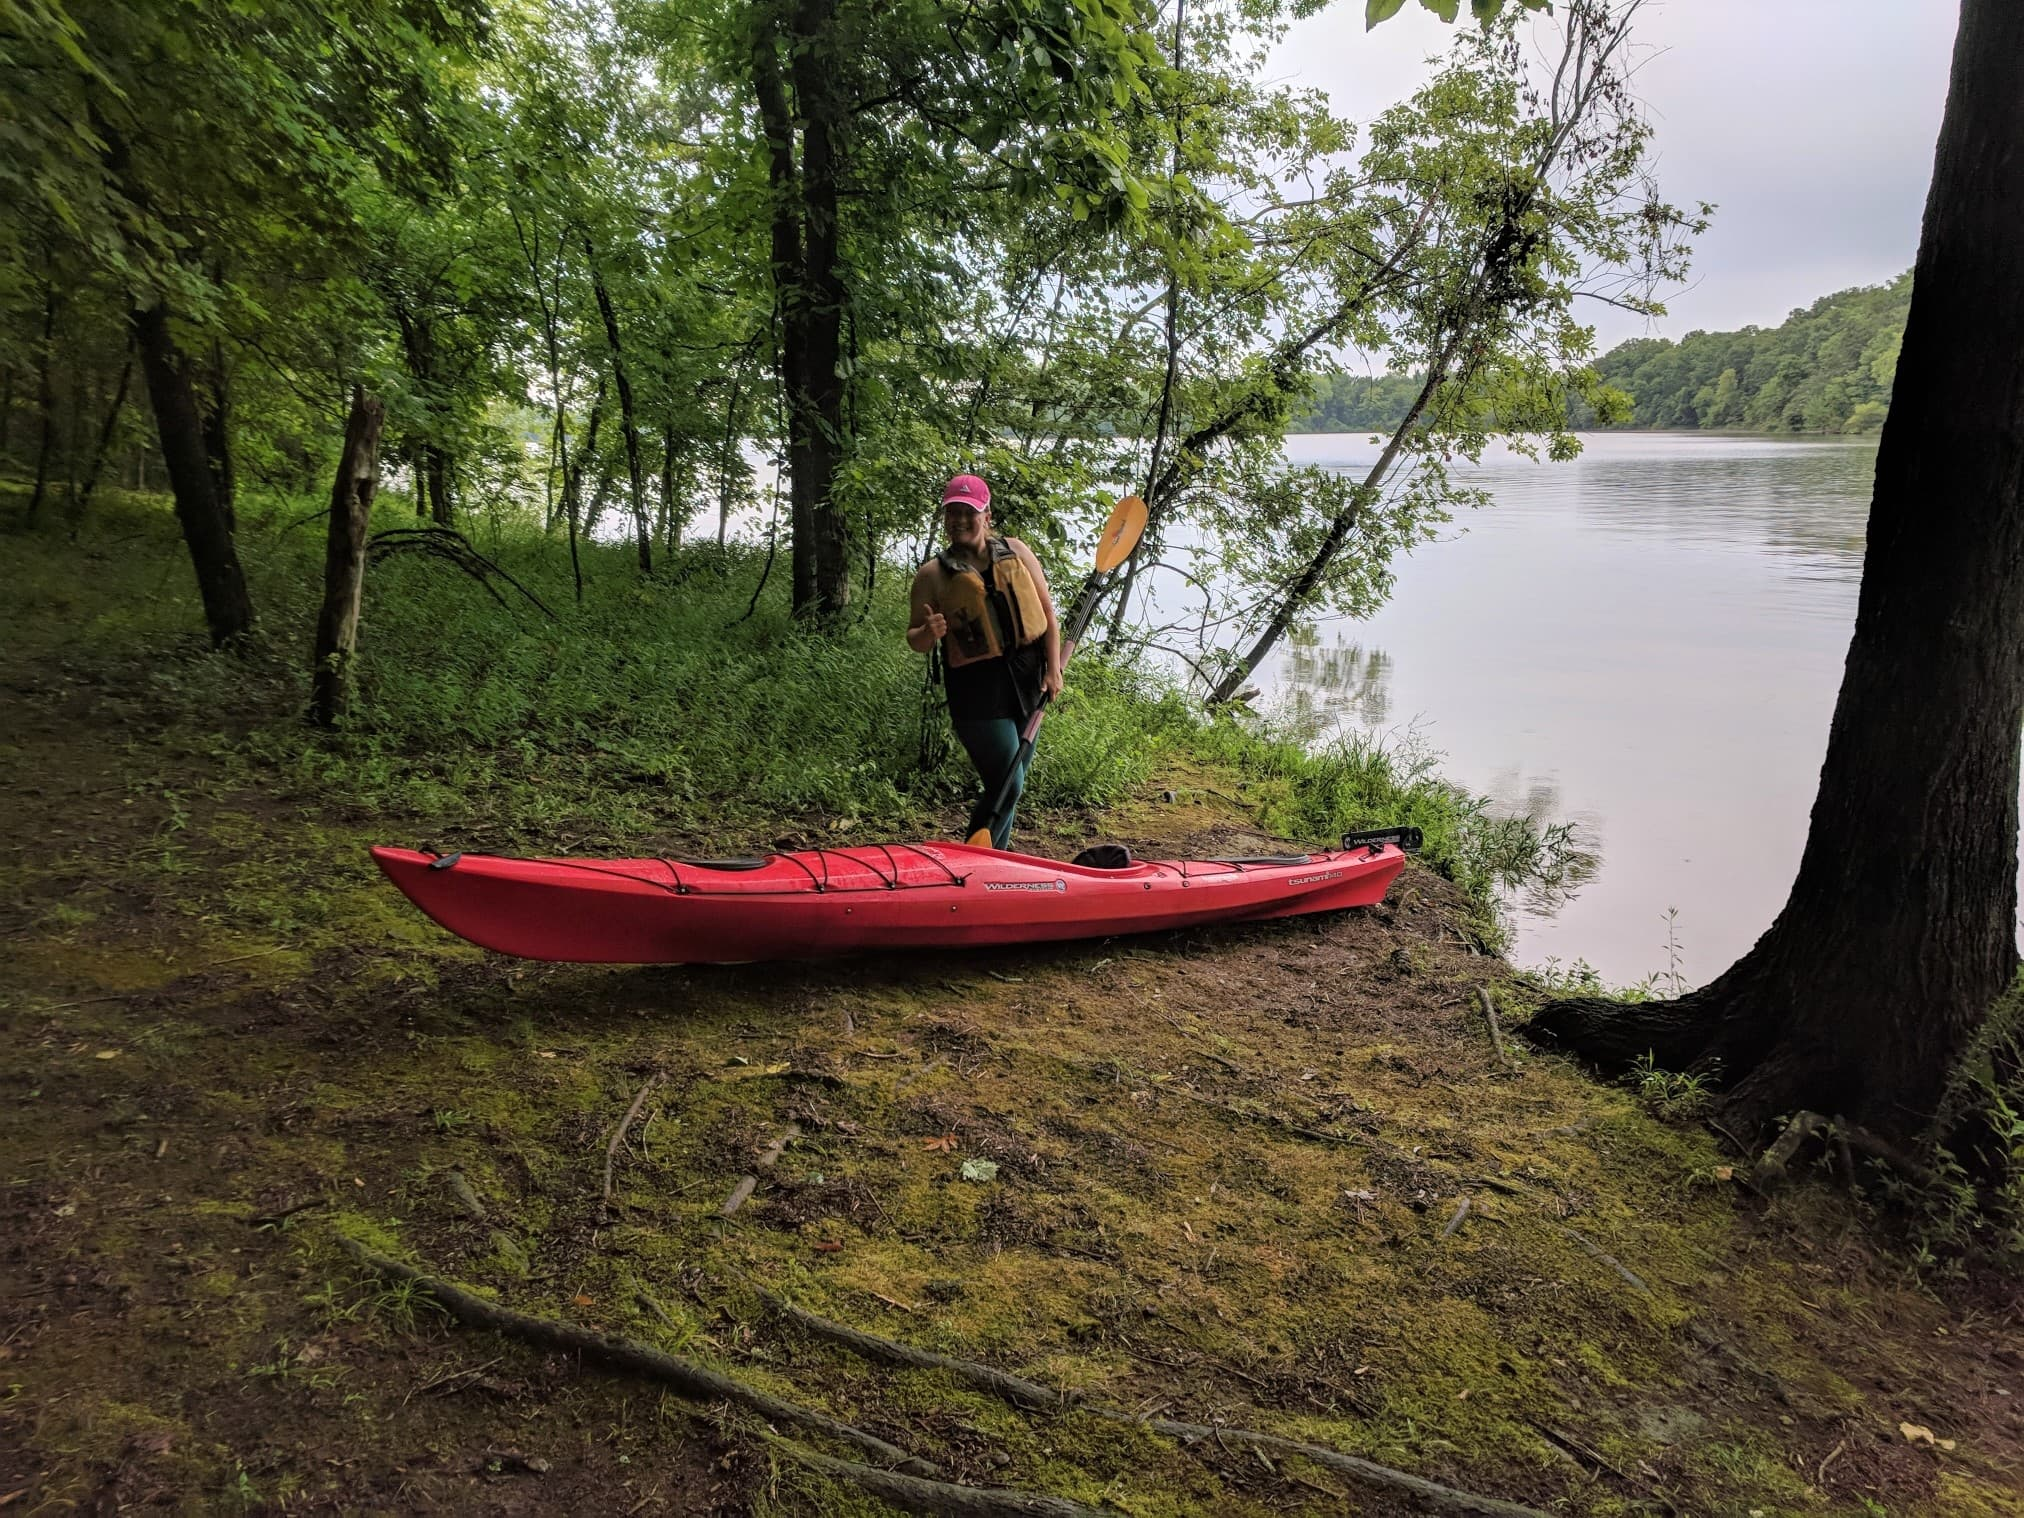 woman standing next to red kayak on shore of lake